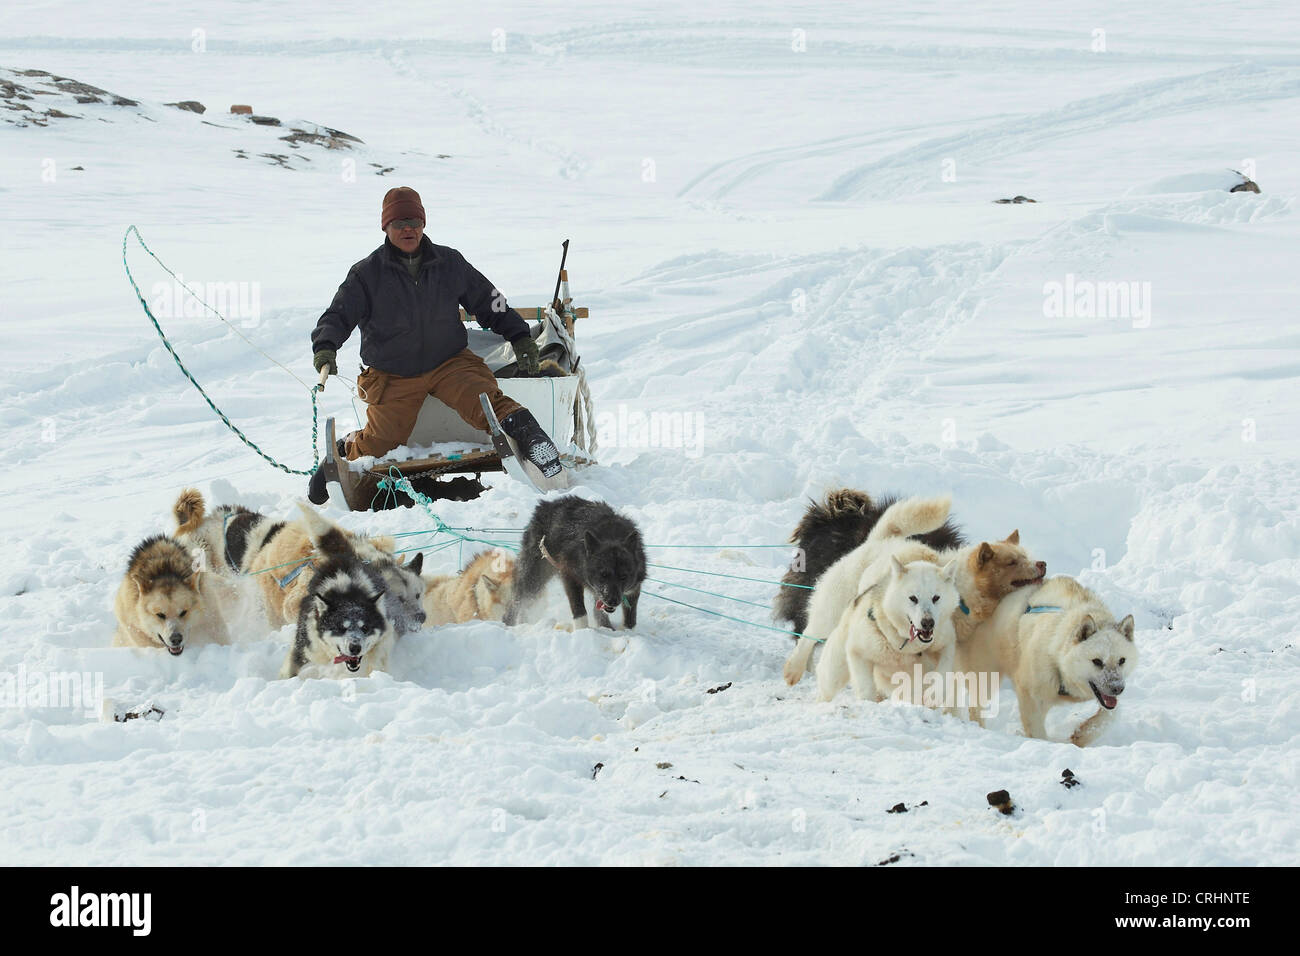 greenland dog canis lupus f familiaris inuit riding a dog